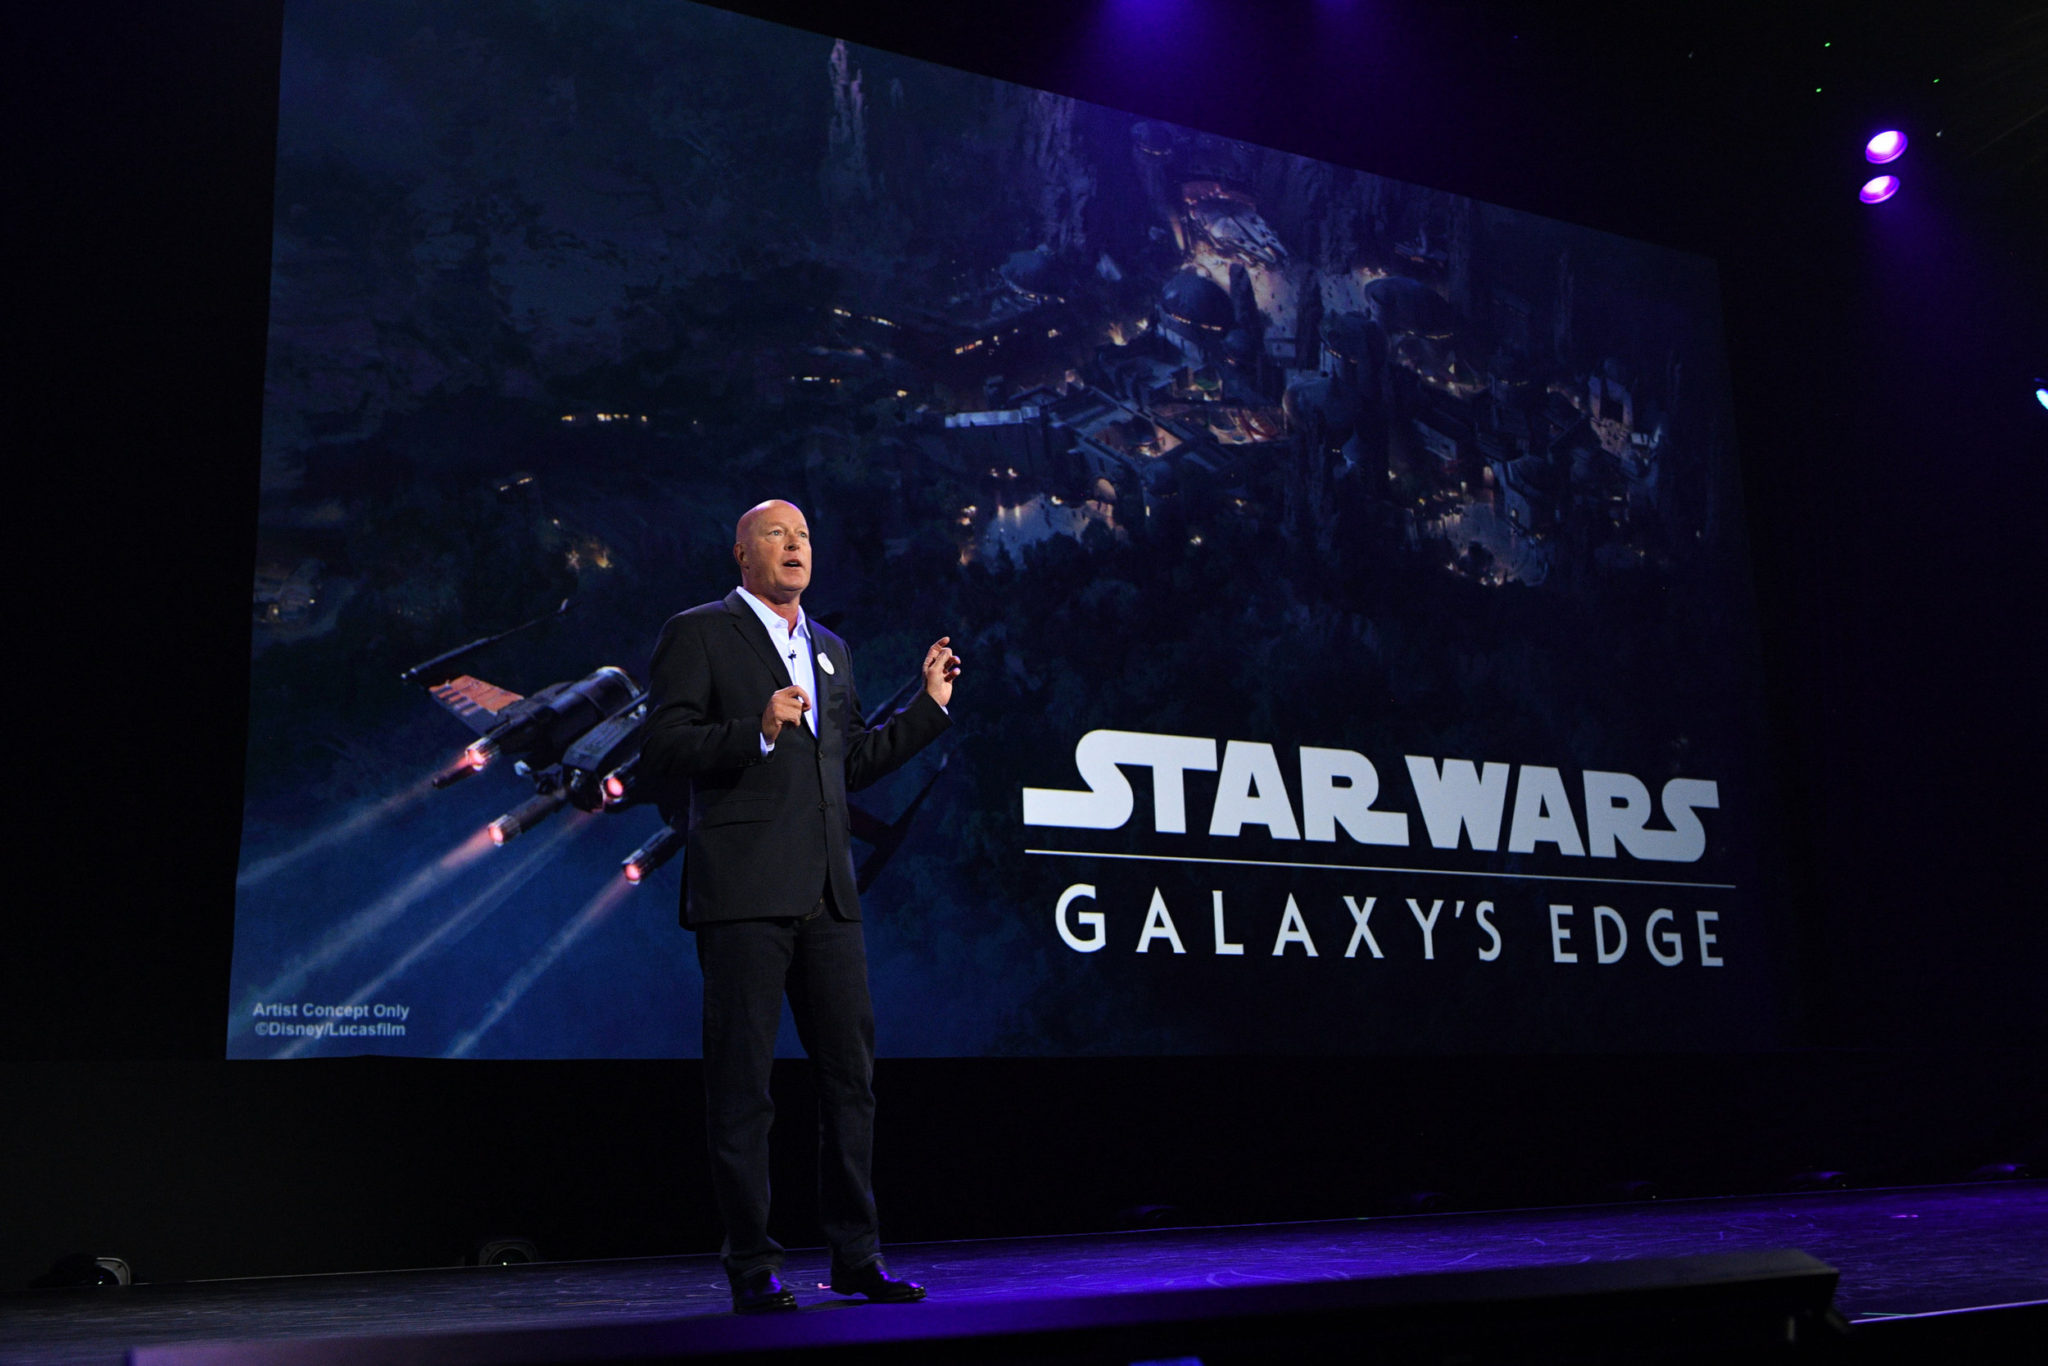 Star Wars: Galaxy's Edge BOB CHAPEK (CHAIRMAN, DISNEY PARKS AND RESORTS)